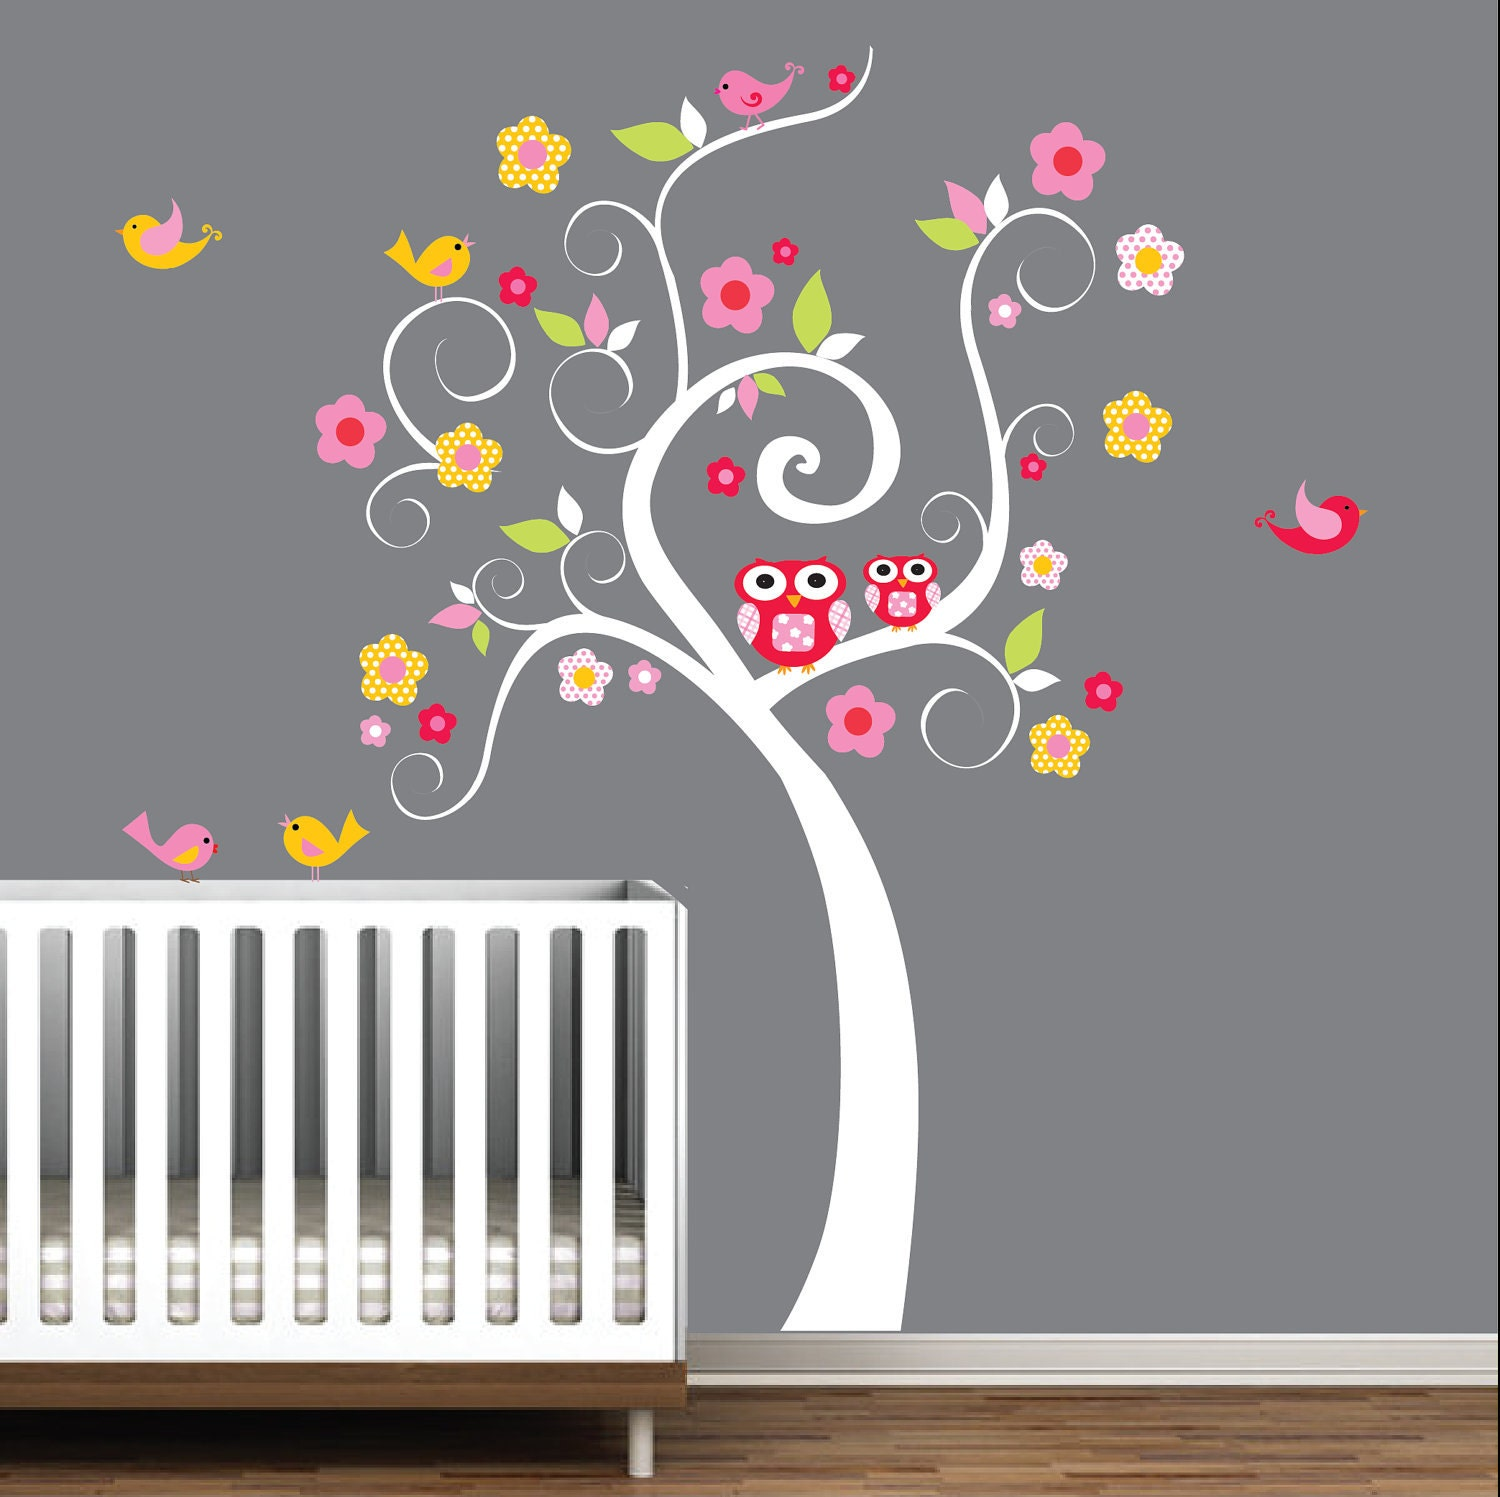 children wall decals nursery tree decal wall by modernwalls. Black Bedroom Furniture Sets. Home Design Ideas